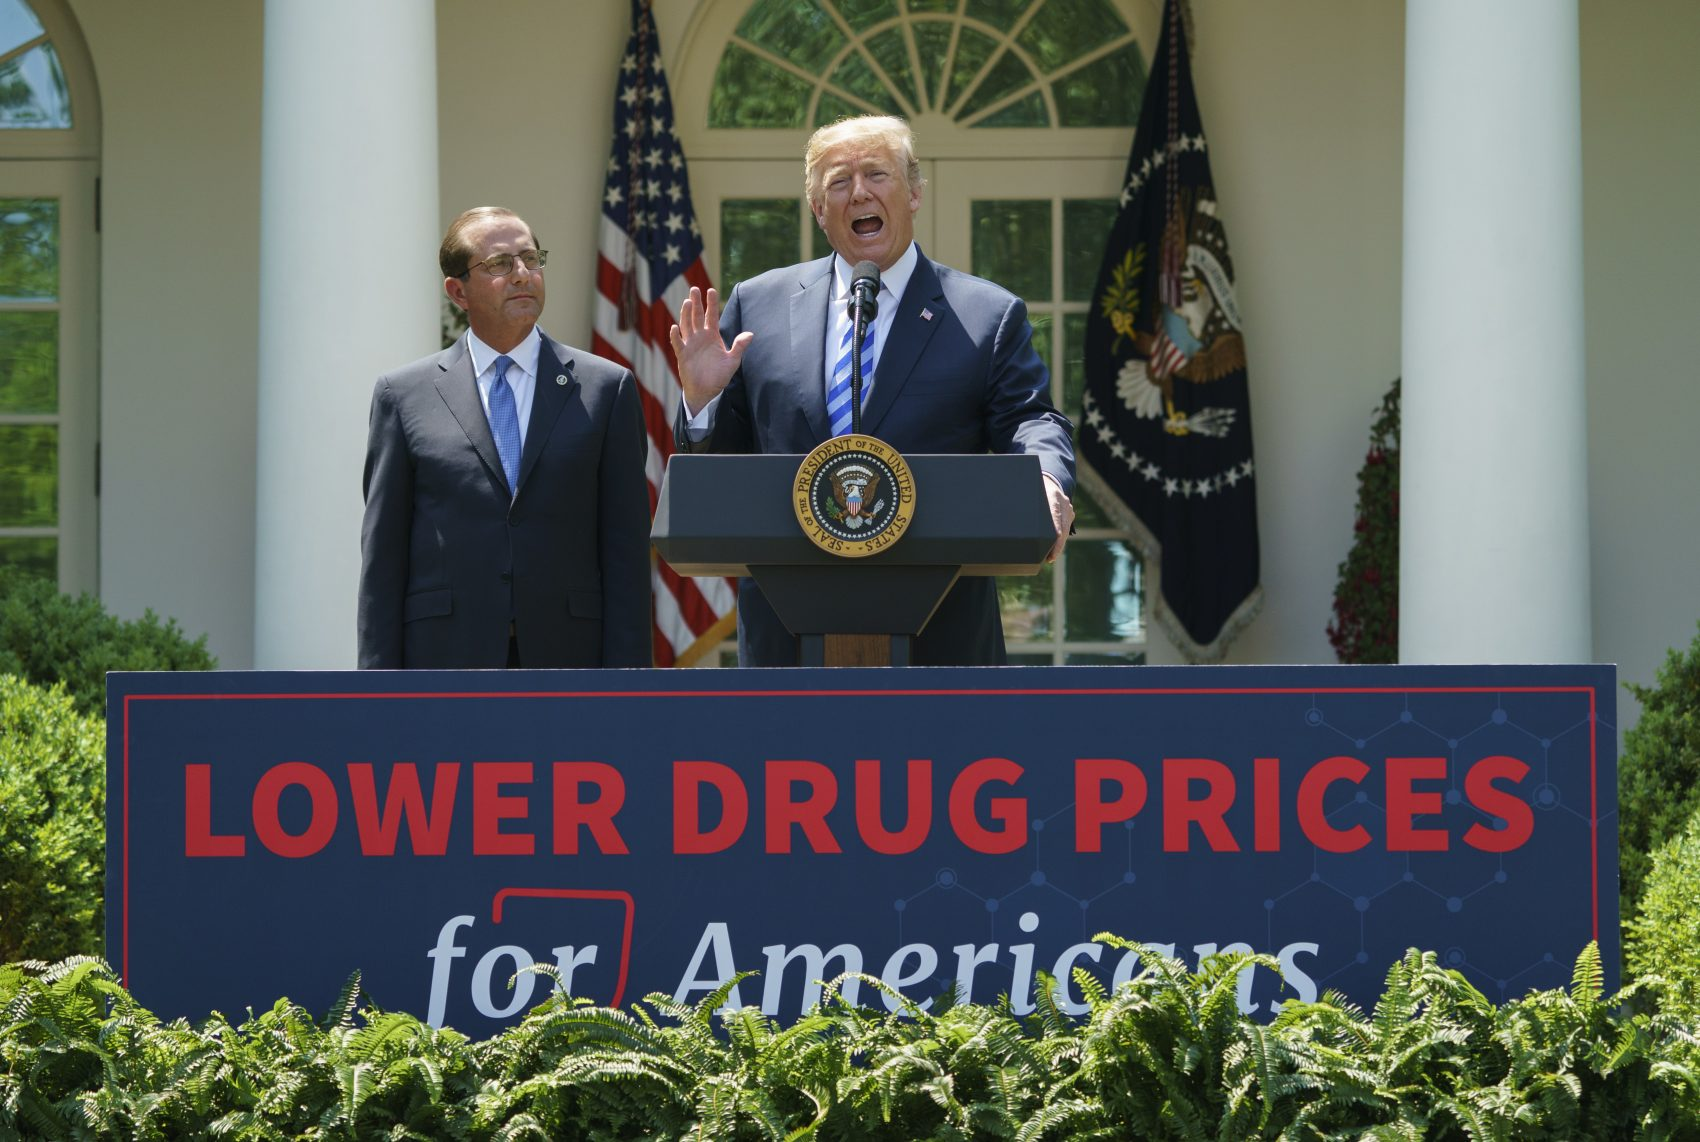 President Donald Trump speaks during an event about prescription drug prices with Health and Human Services Secretary Alex Azar in the Rose Garden of the White House in Washington, Friday, May 11, 2018. (Carolyn Kaster/AP)